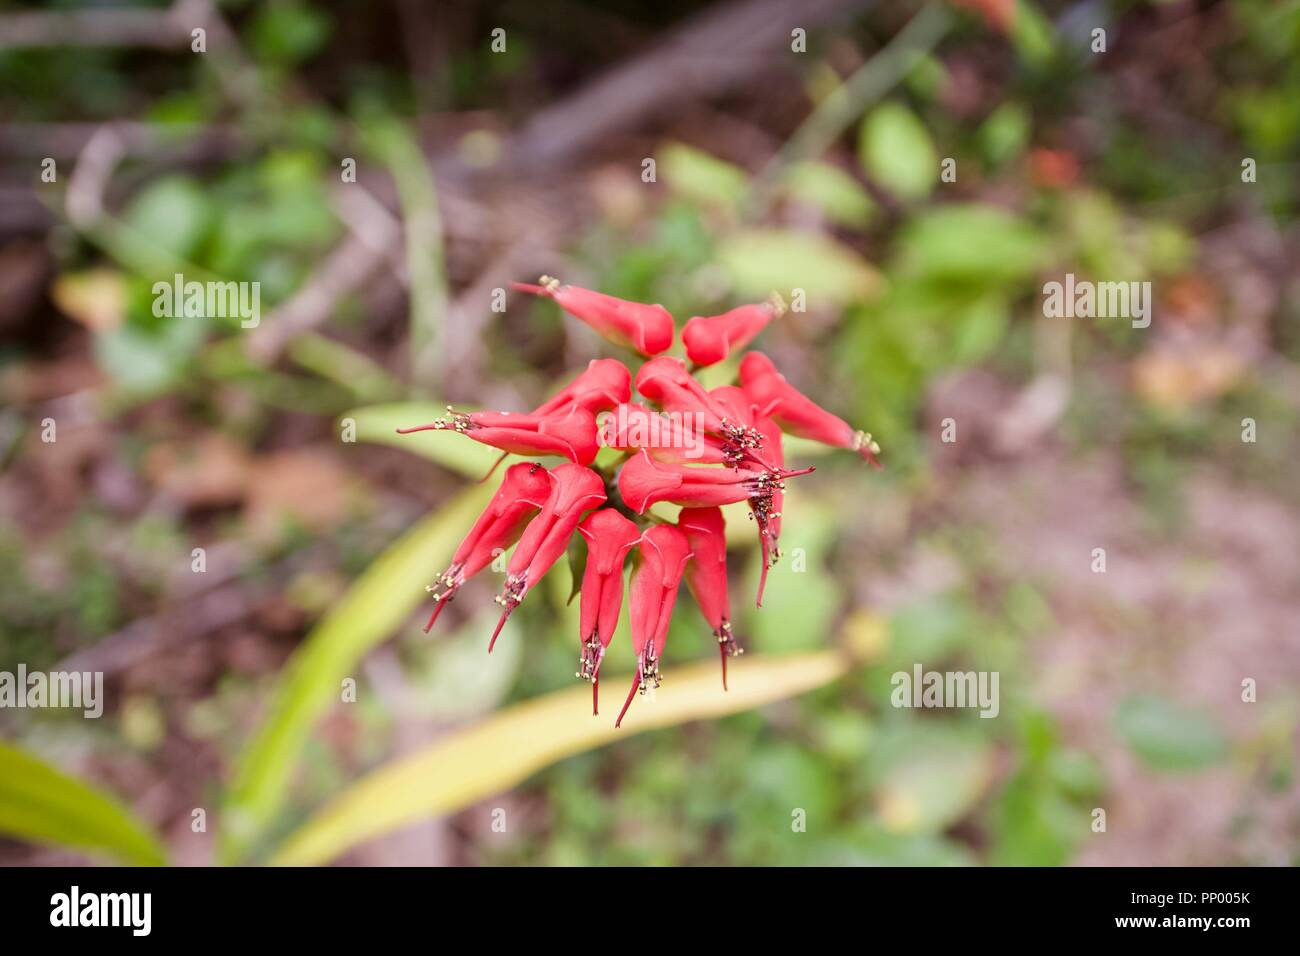 Euphorbia tithymaloides, also known as Pedilanthus tithymaloides, zigzag plant and Devil's backbone - Stock Image